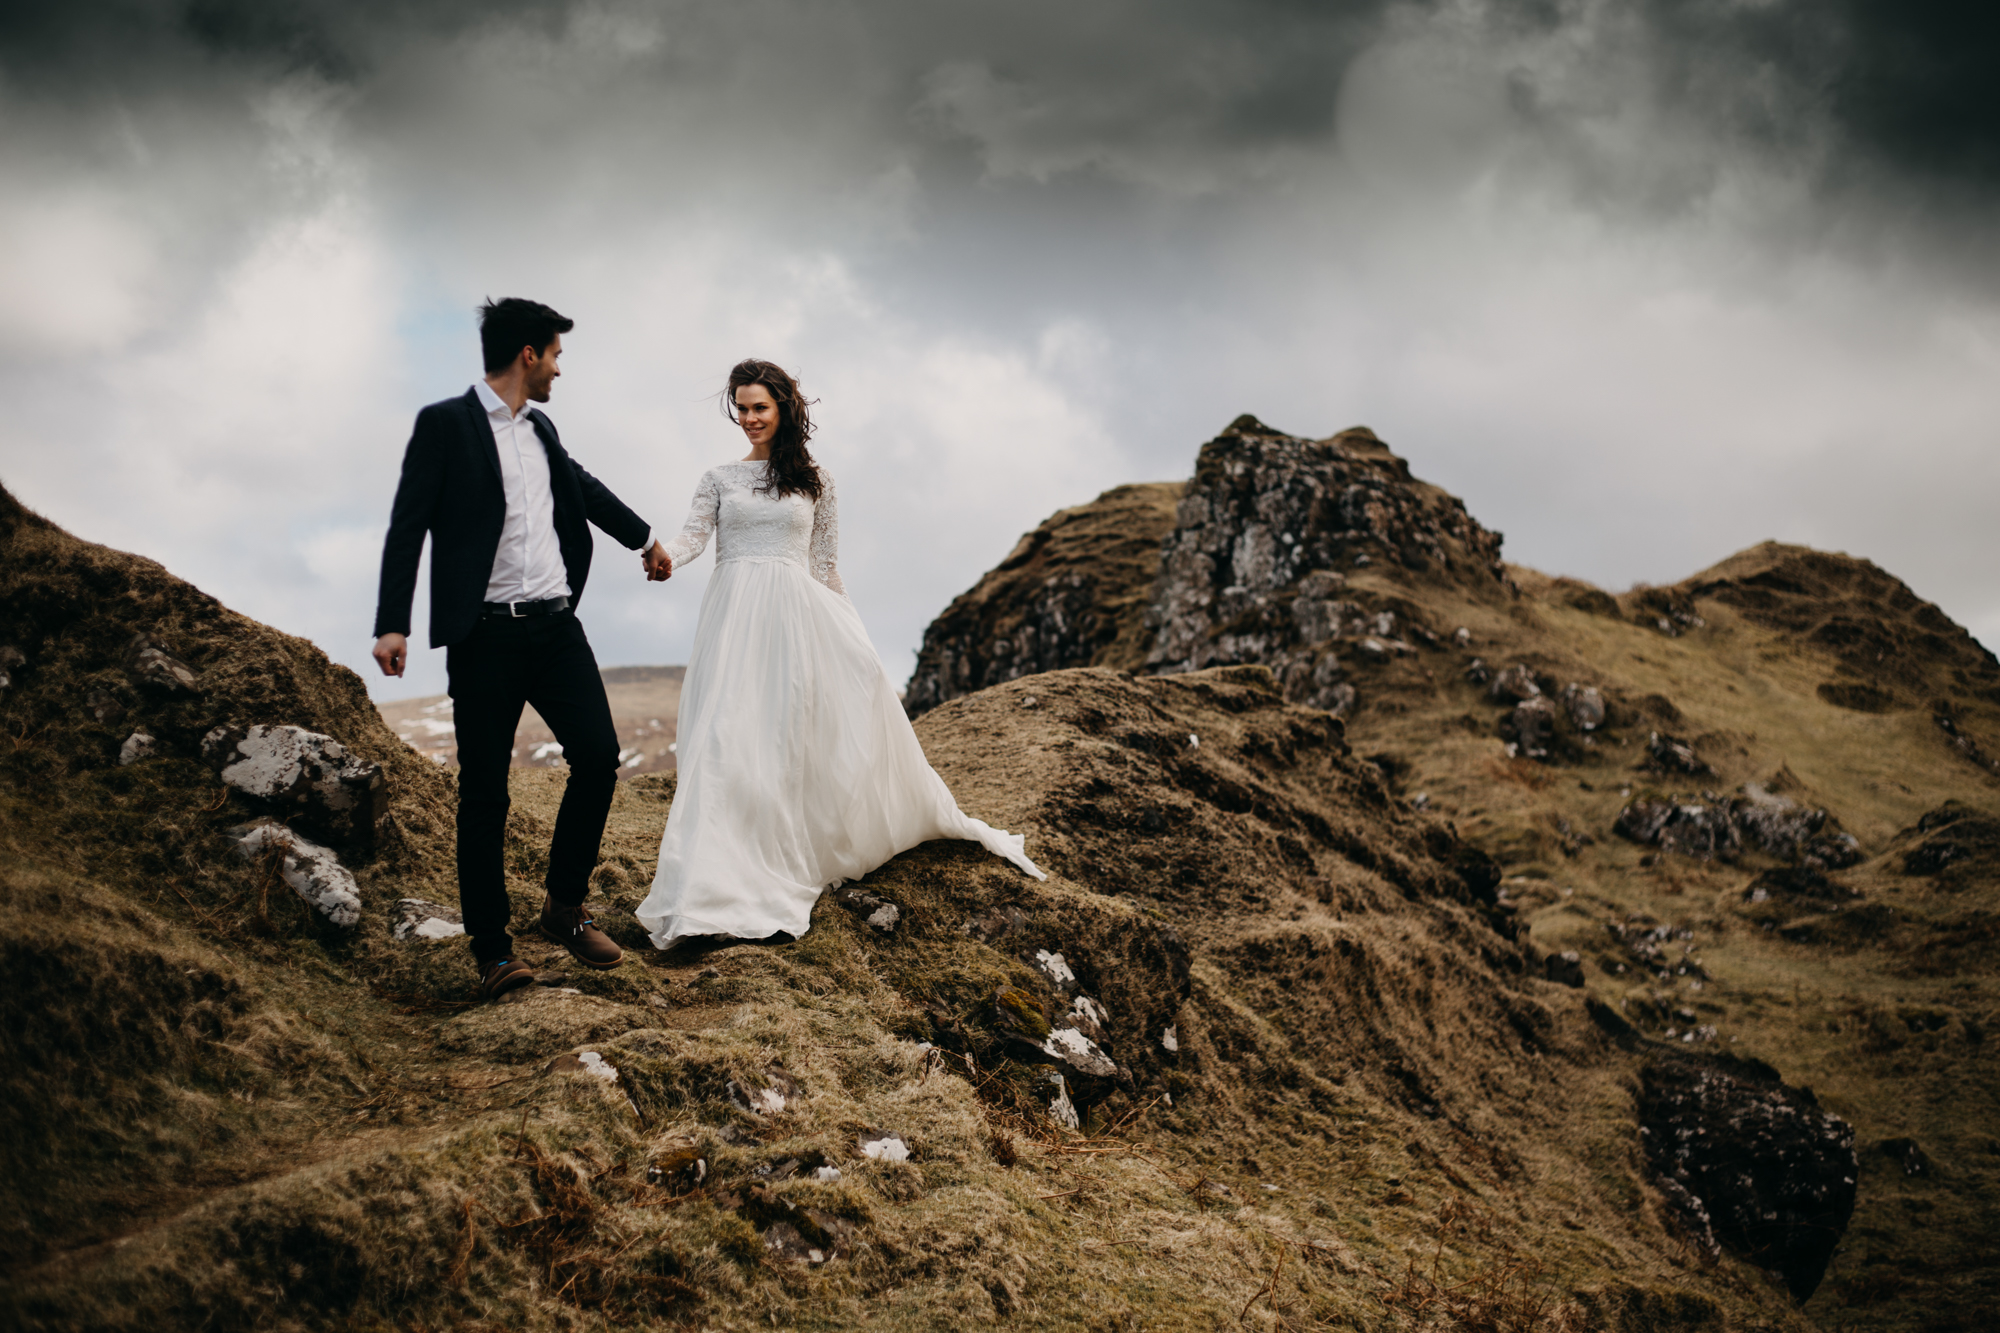 Bride and groom walking over mountain trail by Unfurl Photography